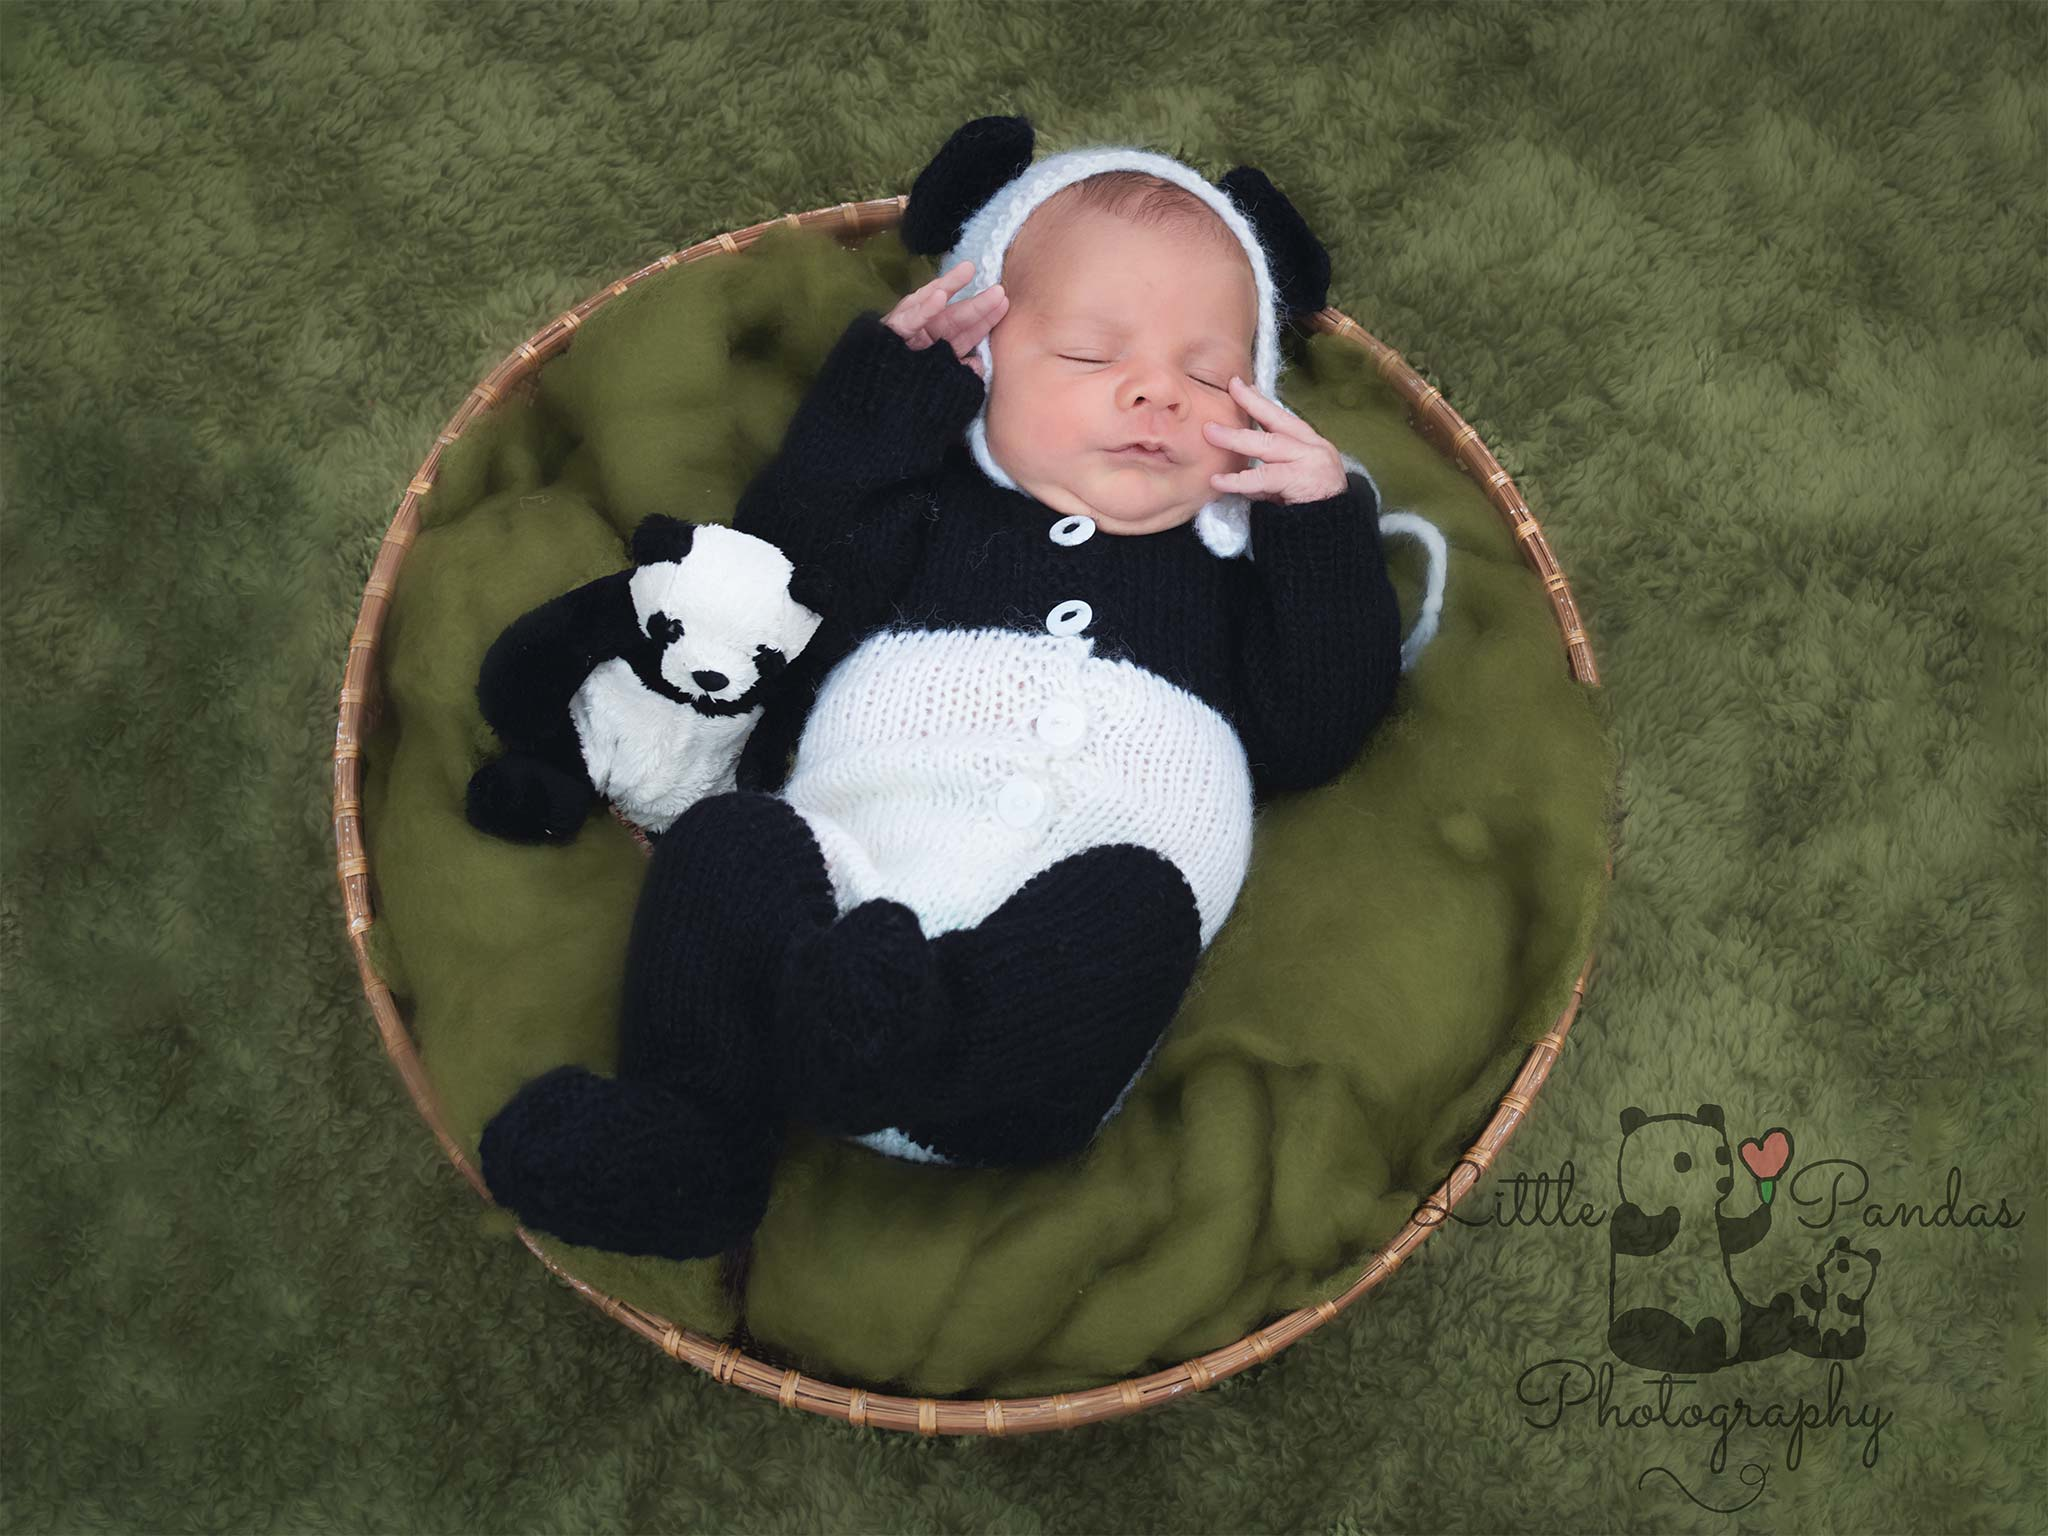 Little Pandas photography socially distanced newborn sessions